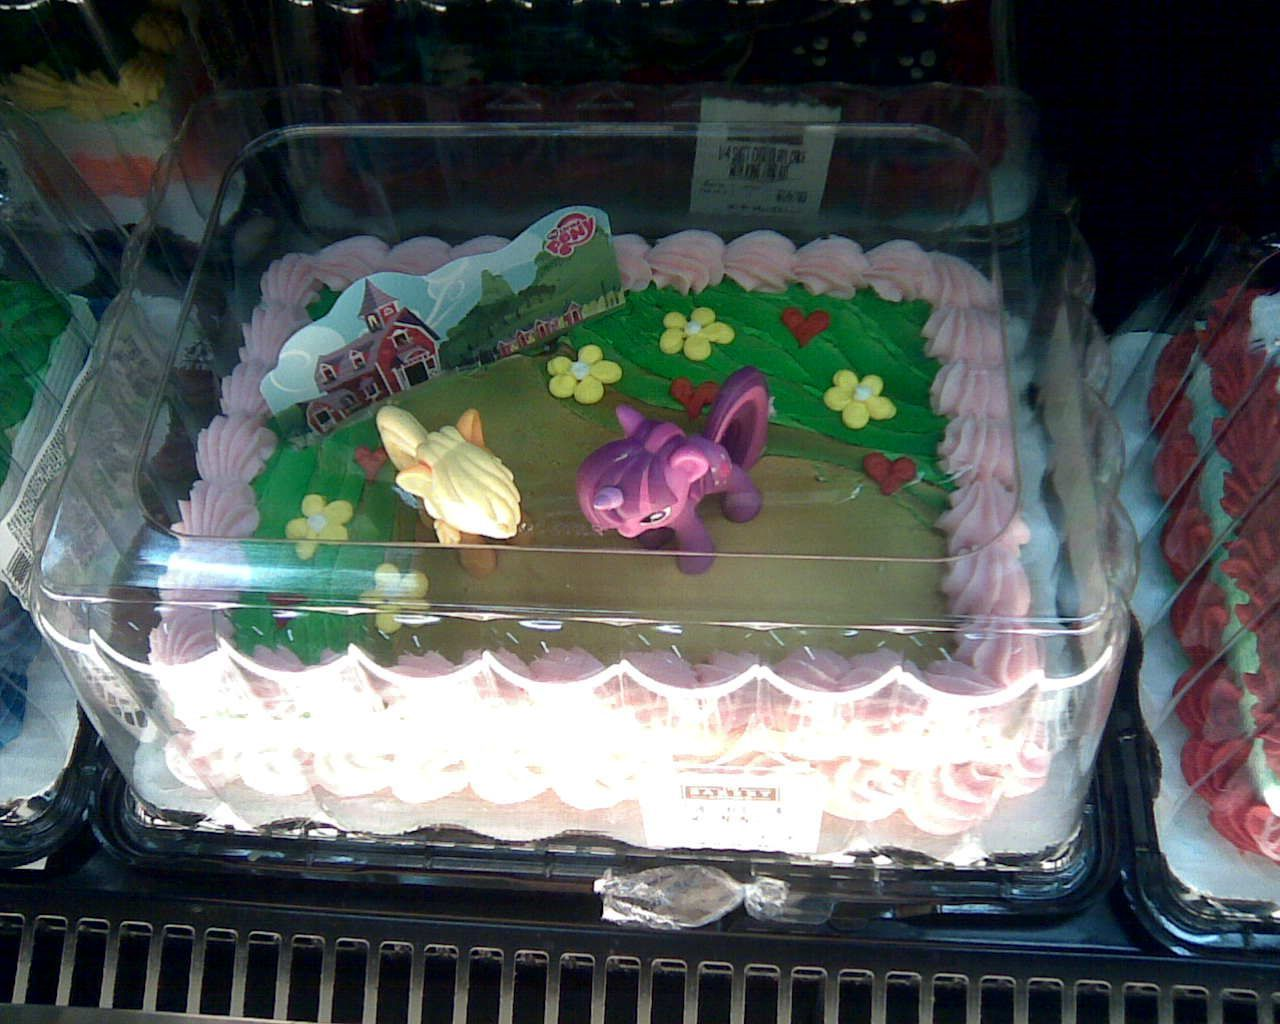 Pleasant More Pony Cakes At Wal Mart Walmart Birthday Cakes Elmo Funny Birthday Cards Online Overcheapnameinfo